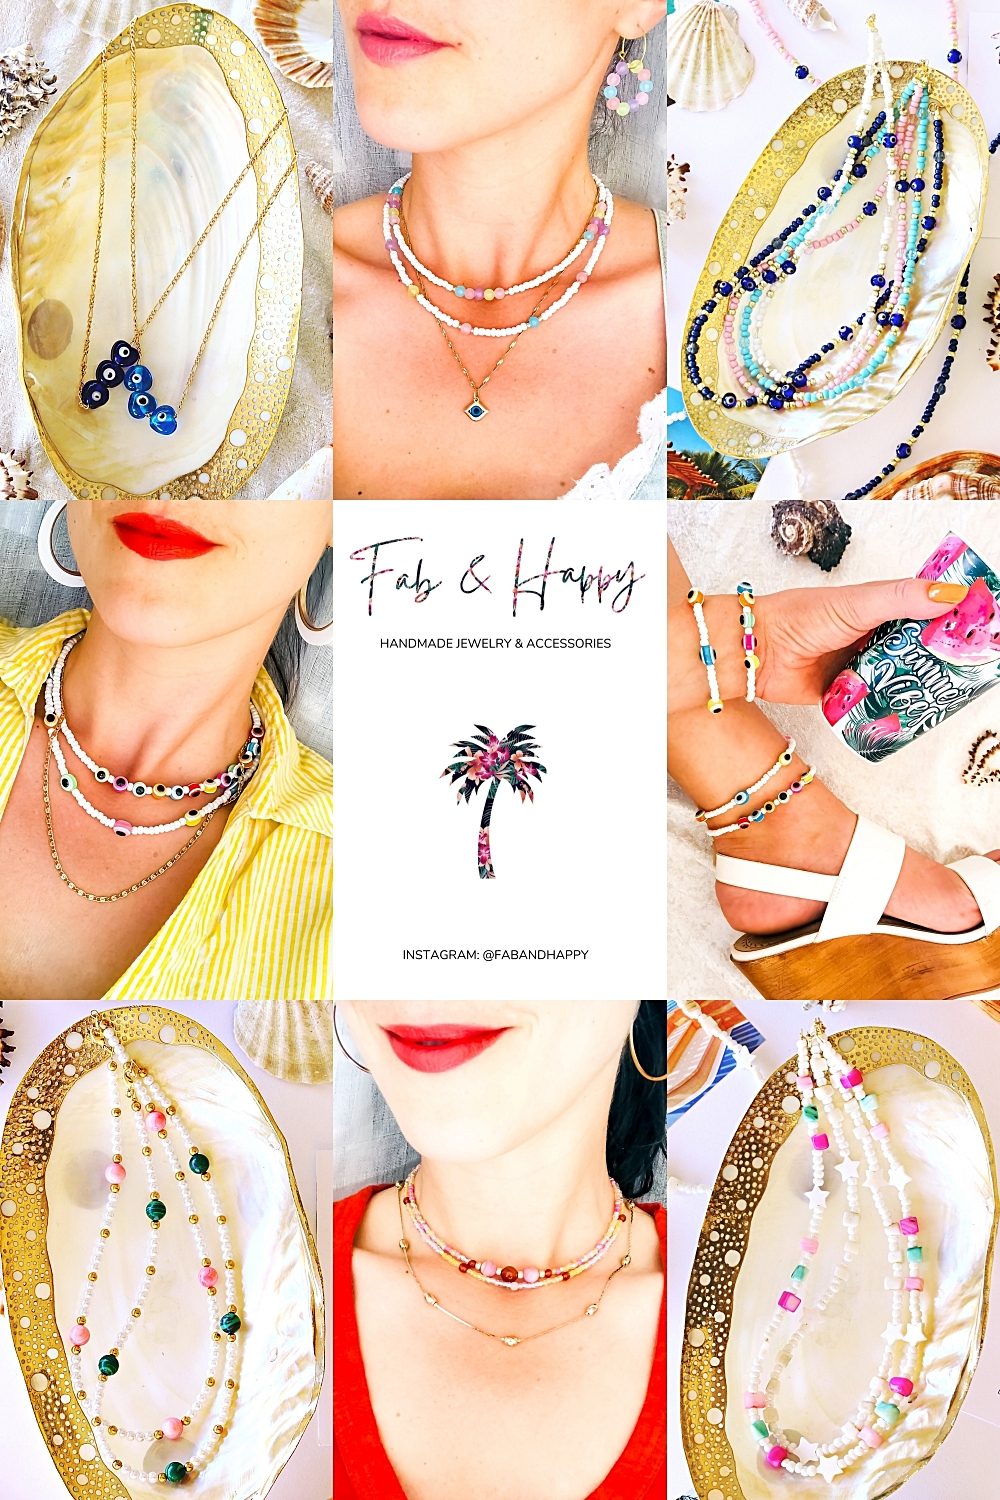 0 FAB & HAPPY handmade jewelry & accessories for happy travelers and fab spirits